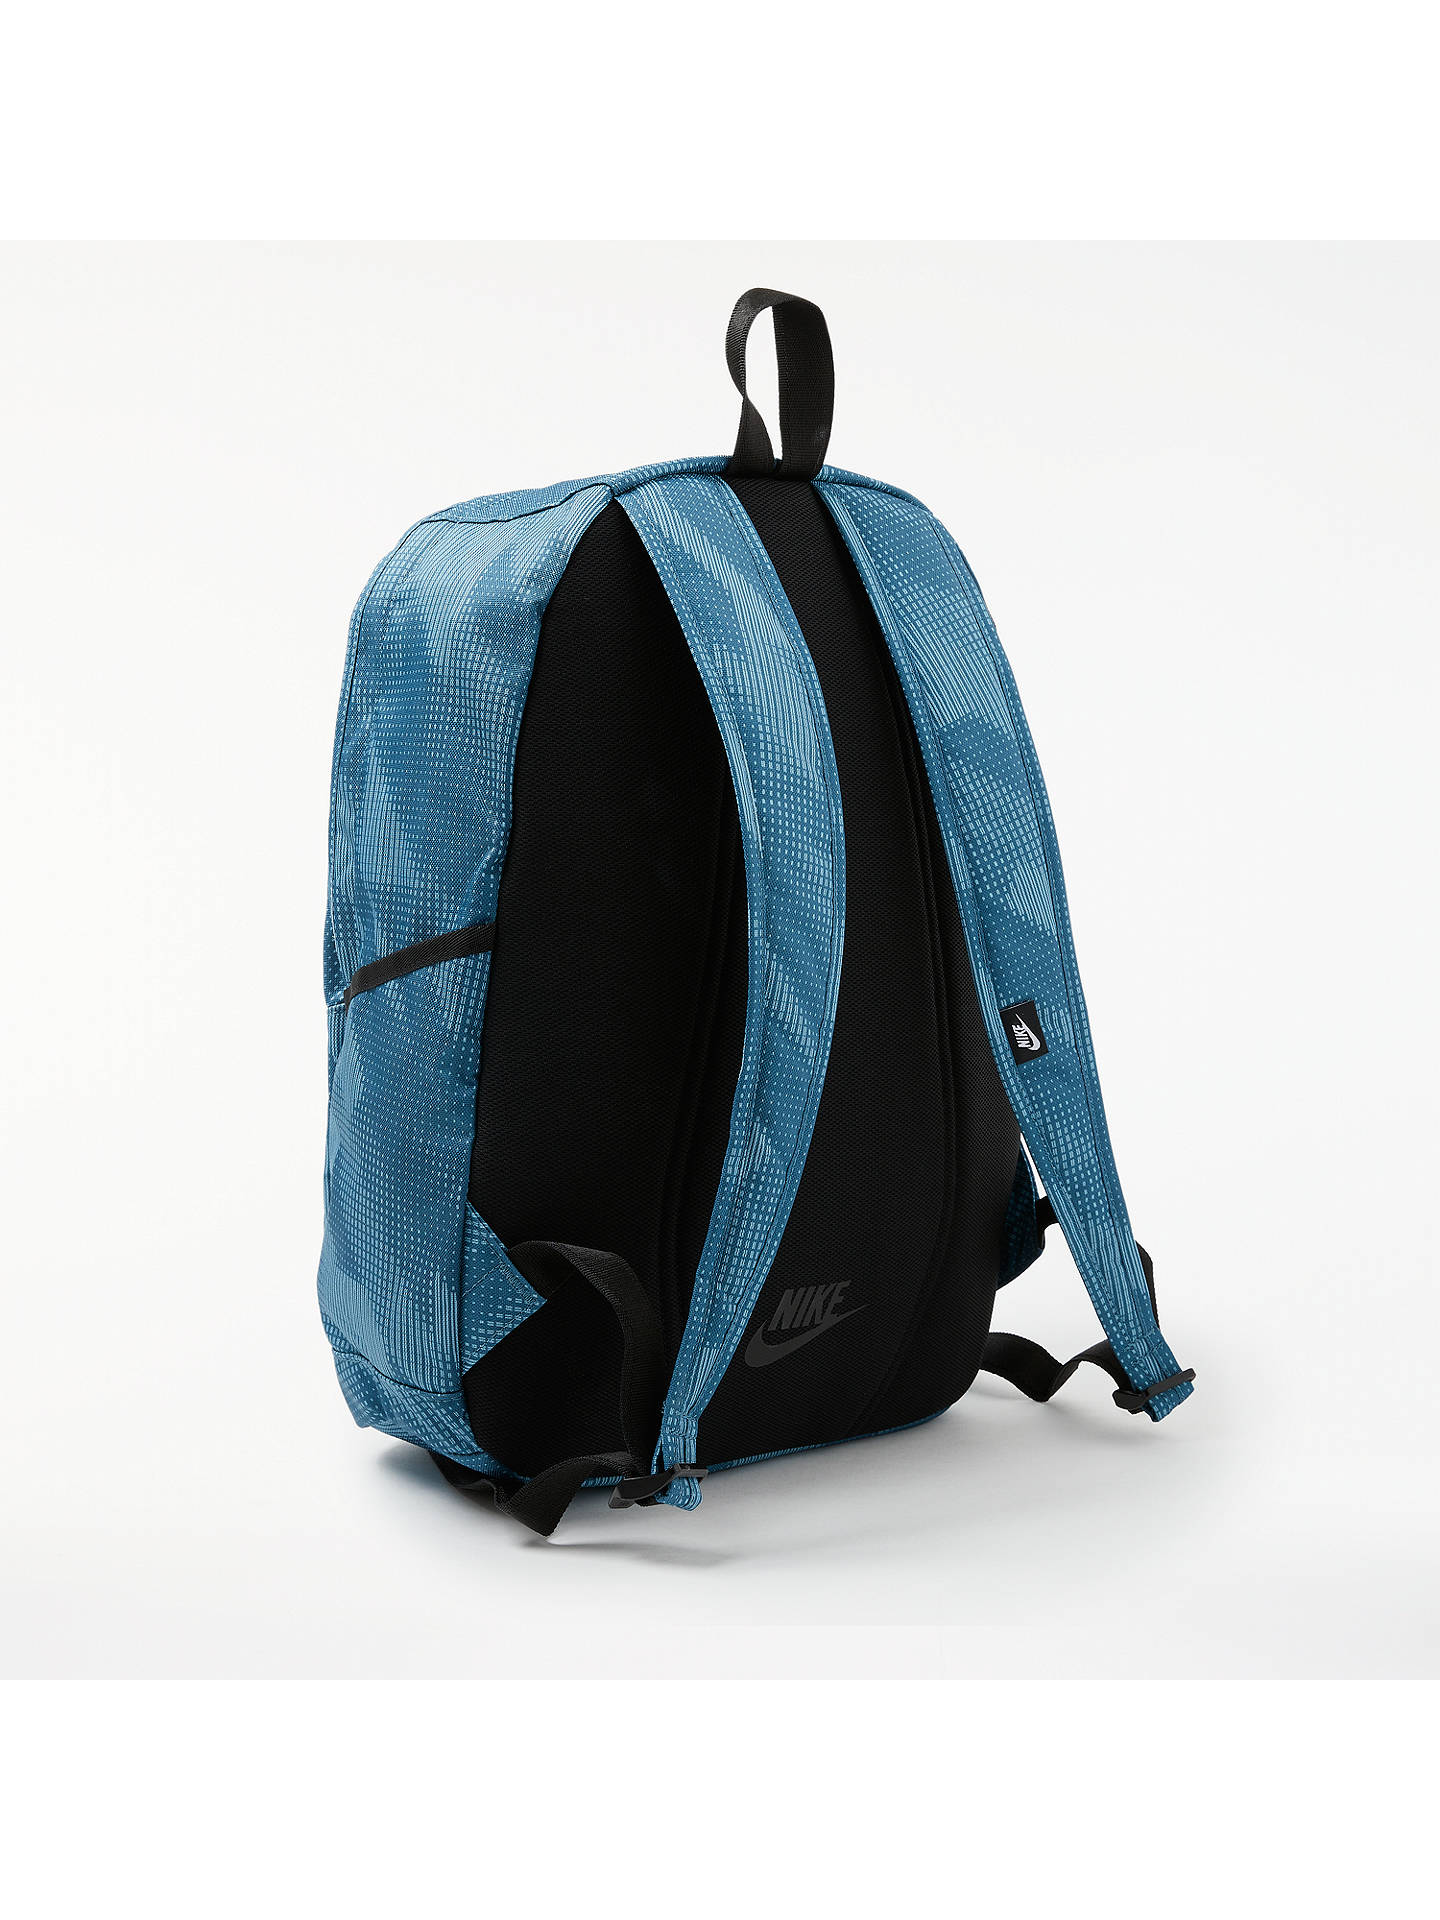 699f41a2f160 ... BuyNike All Access Soleday Backpack